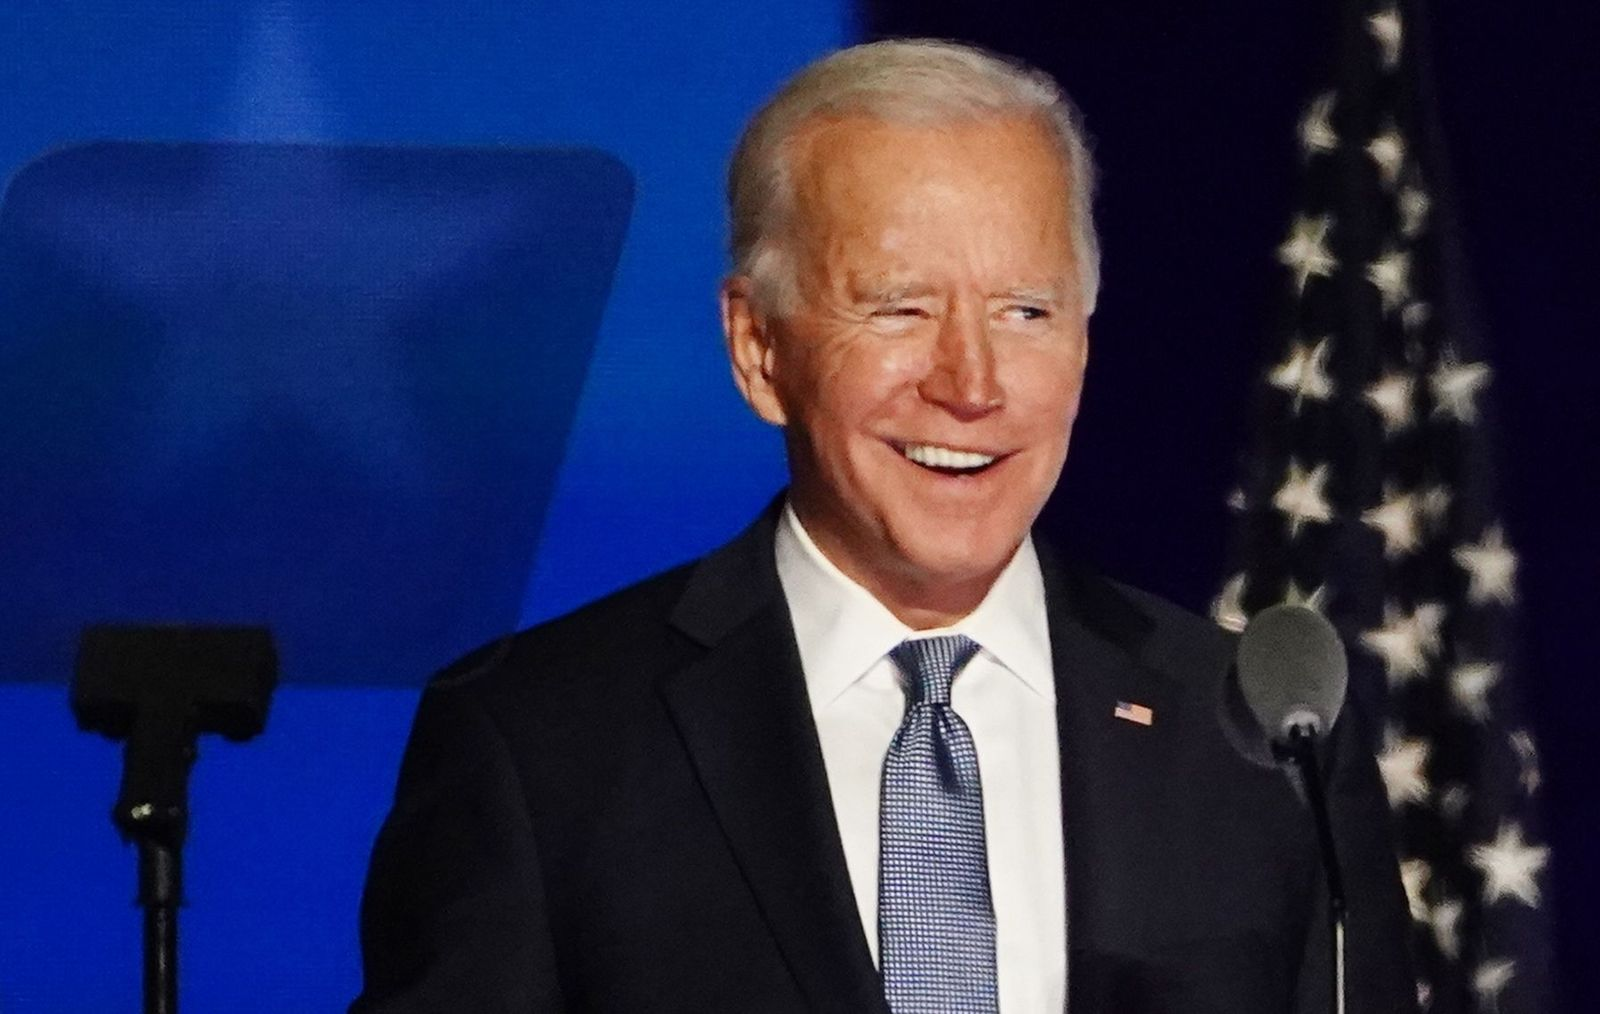 Joe Biden, Wilmington, USA - 03 Nov 2020